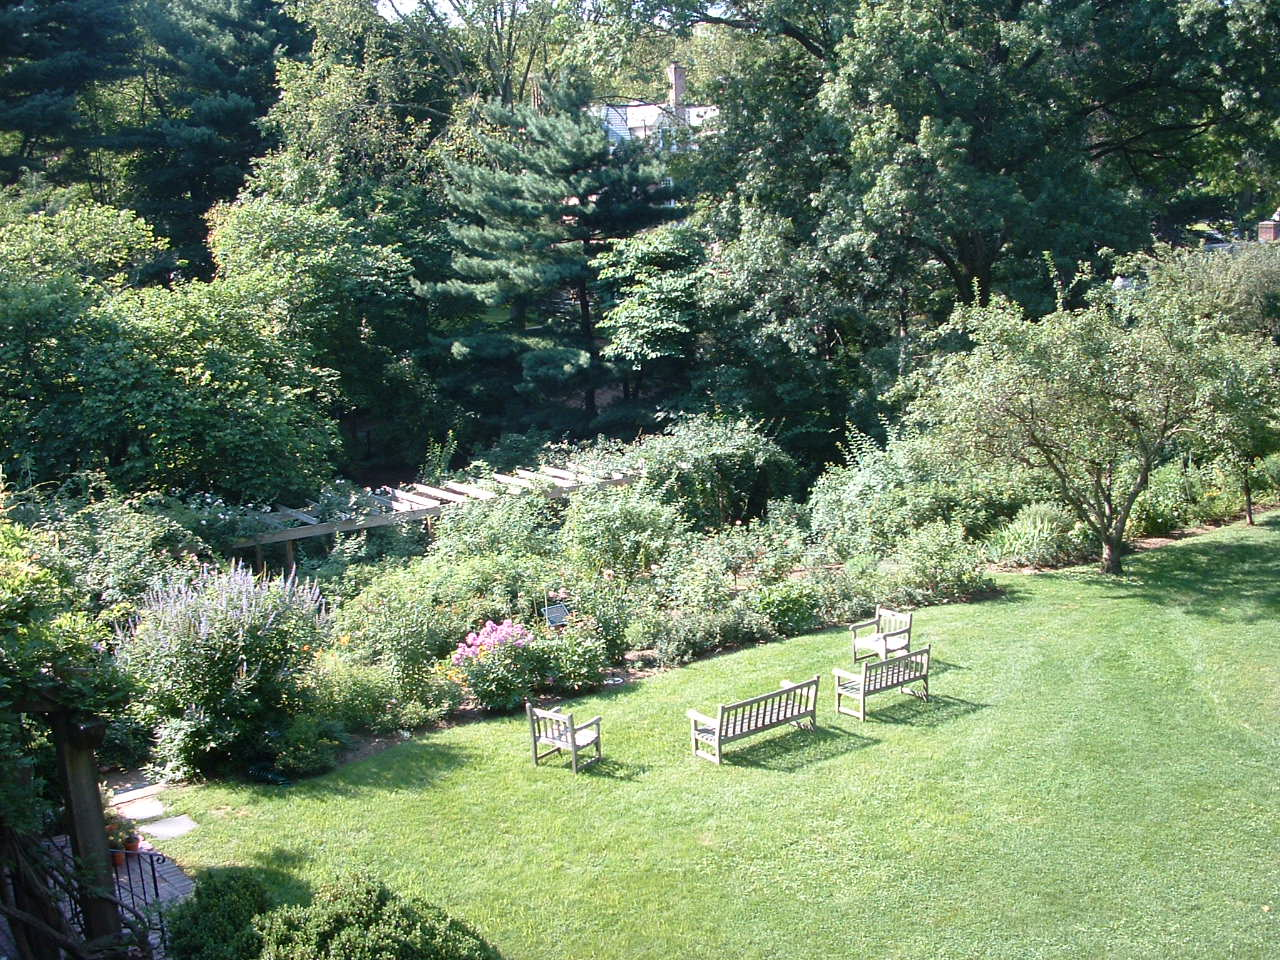 Gardens Of Macculloch Hall Historical Museum, Morristown, New Jersey